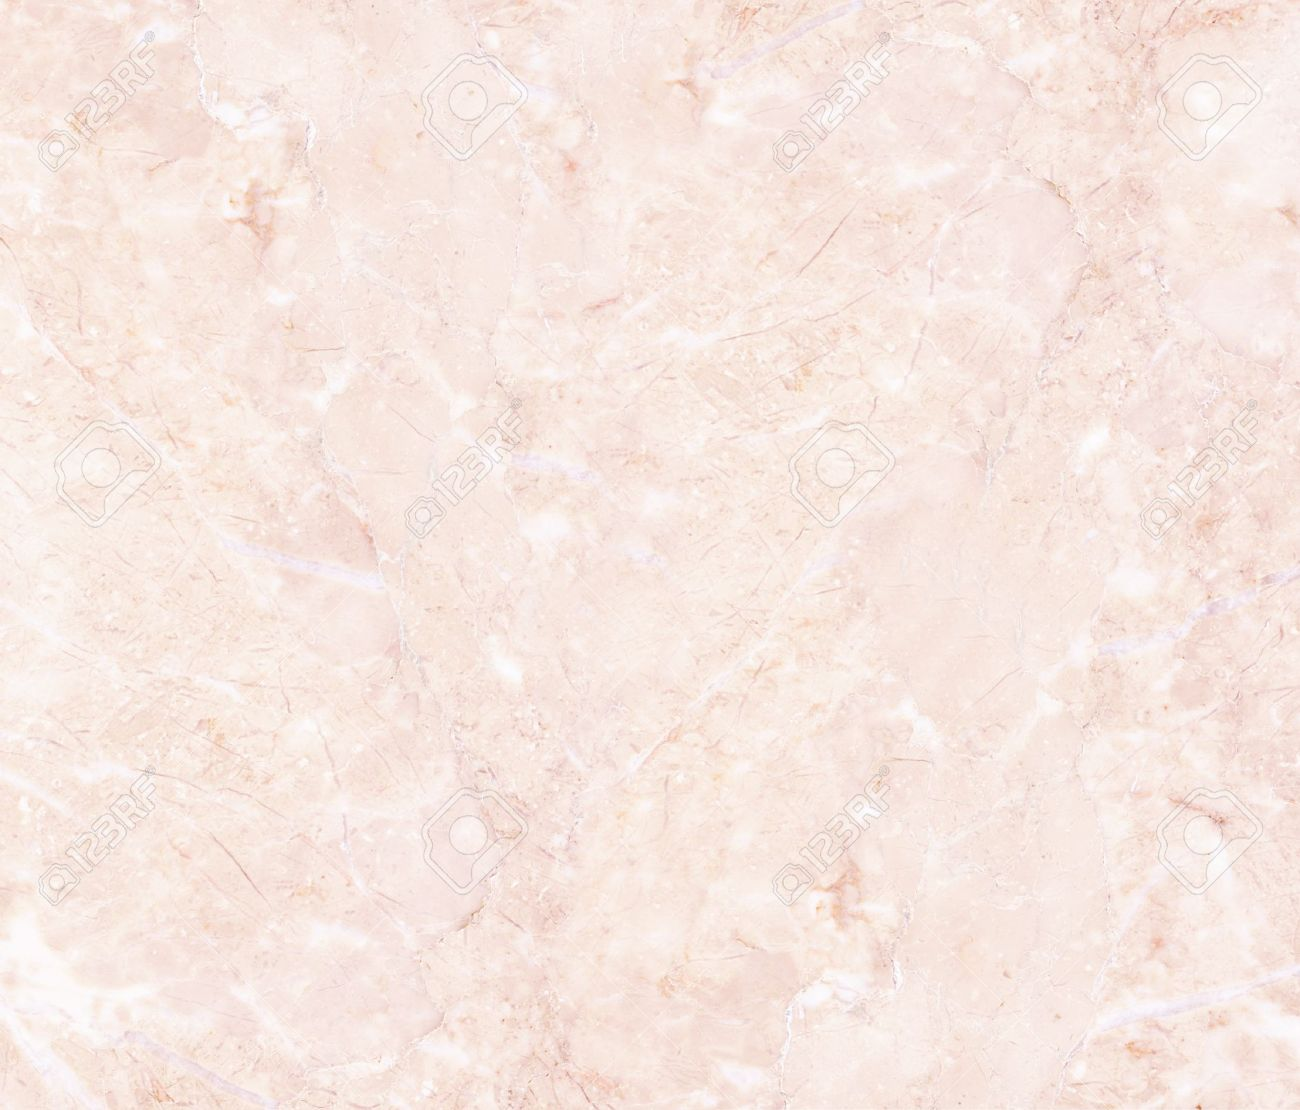 Light pink marble stock photo picture and royalty free image image light pink marble stock photo 10883715 dailygadgetfo Image collections